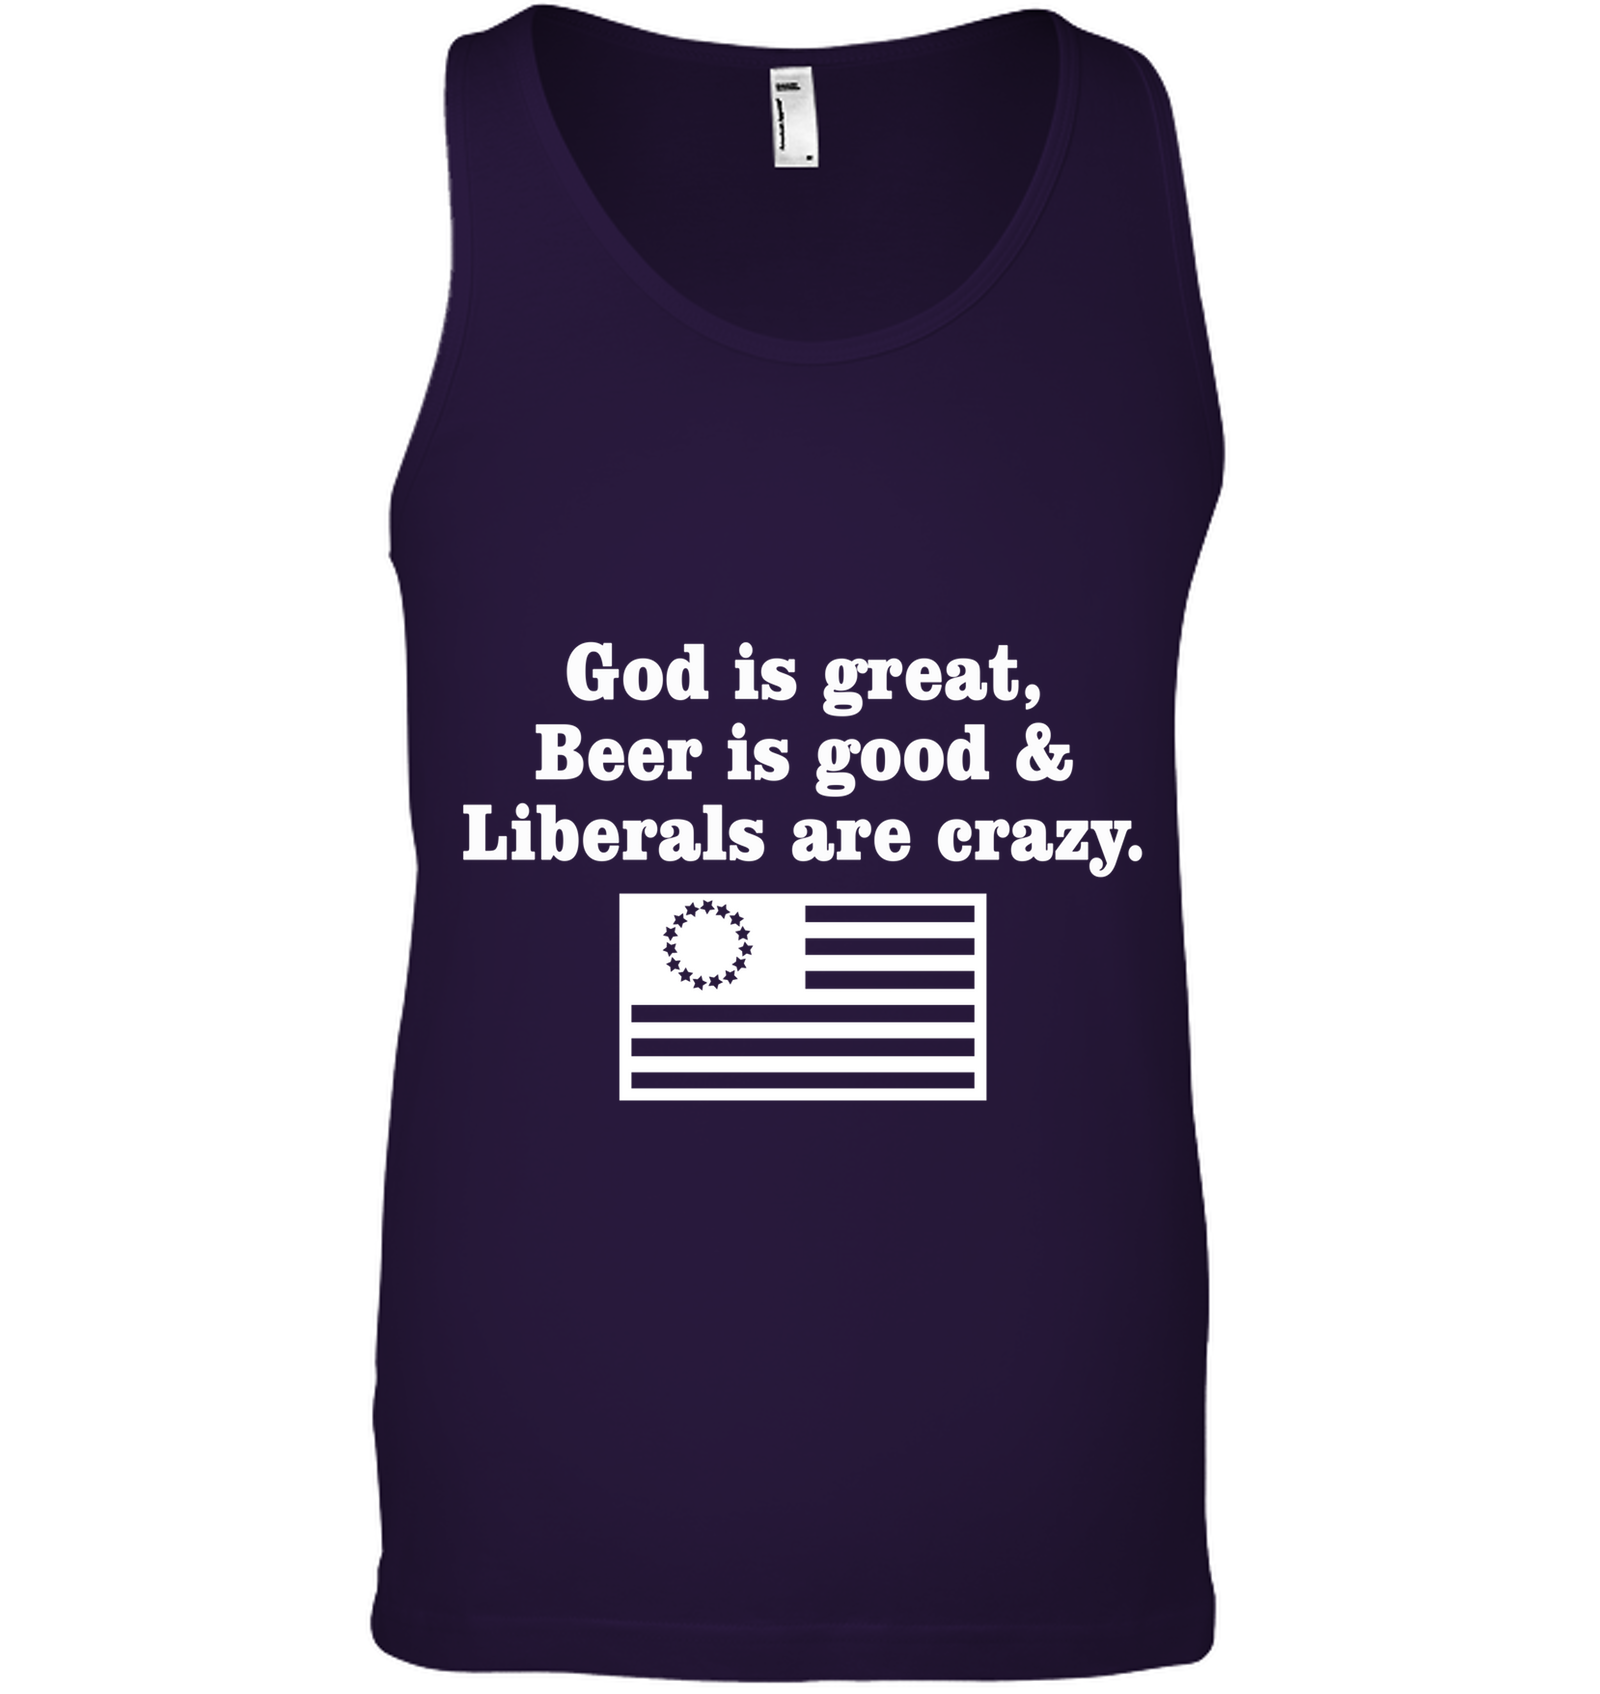 God is Good, Beer is Great, & Liberals are CRAZY